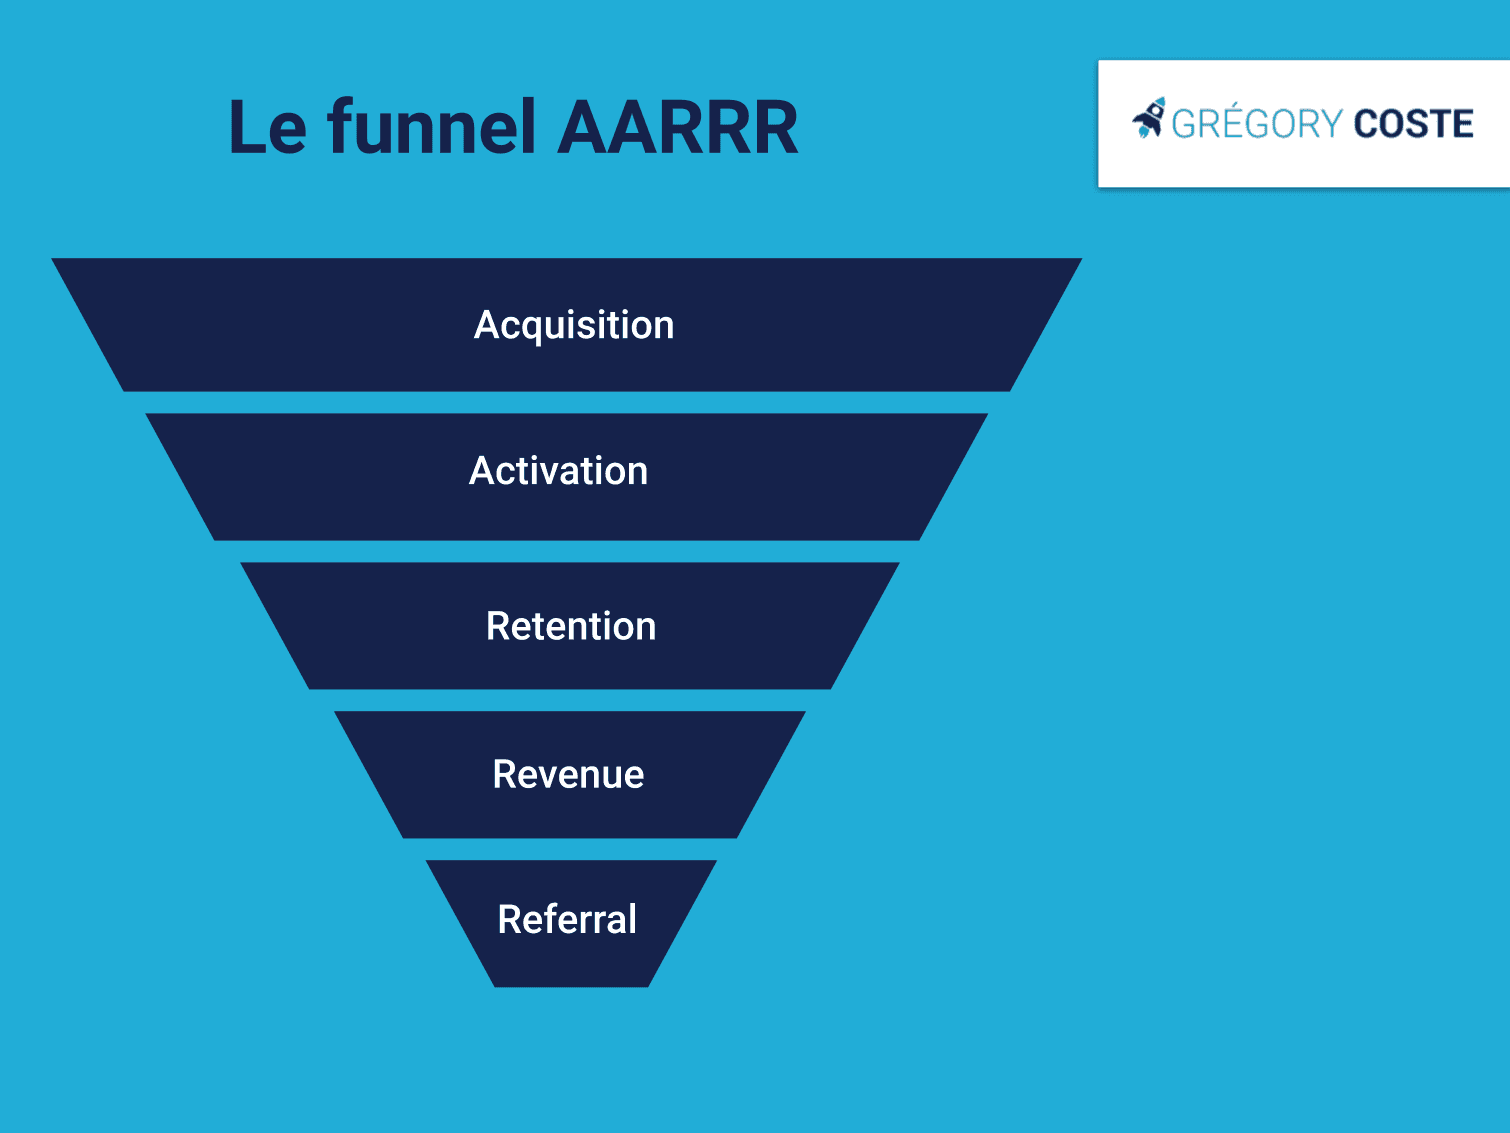 Le funnel marketing AARRR